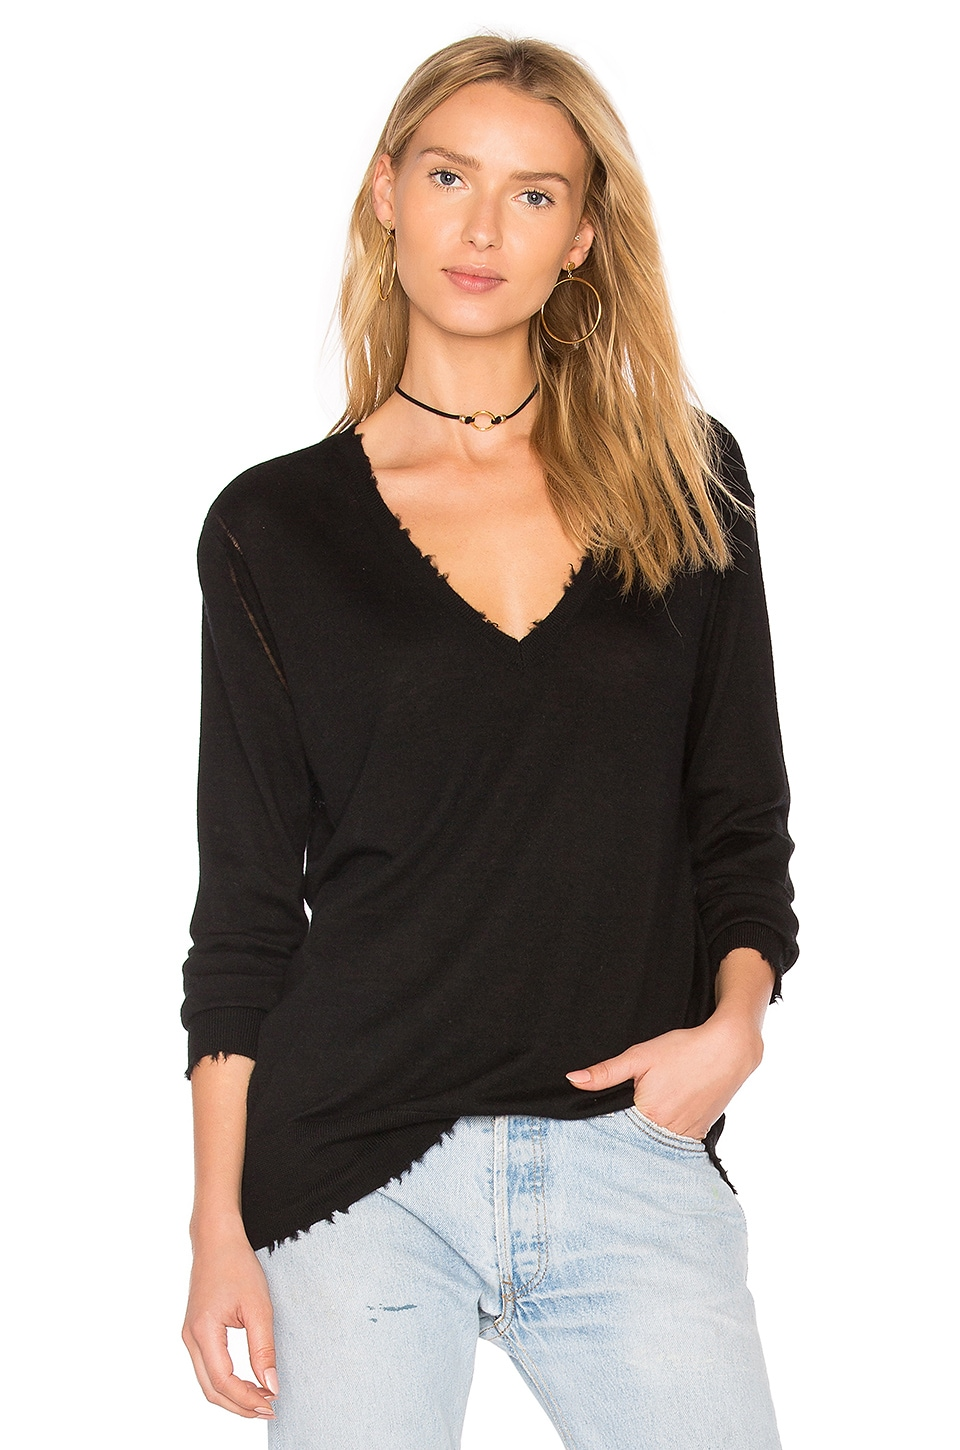 27 miles malibu Bale Boyfriend V Neck Sweater in Black